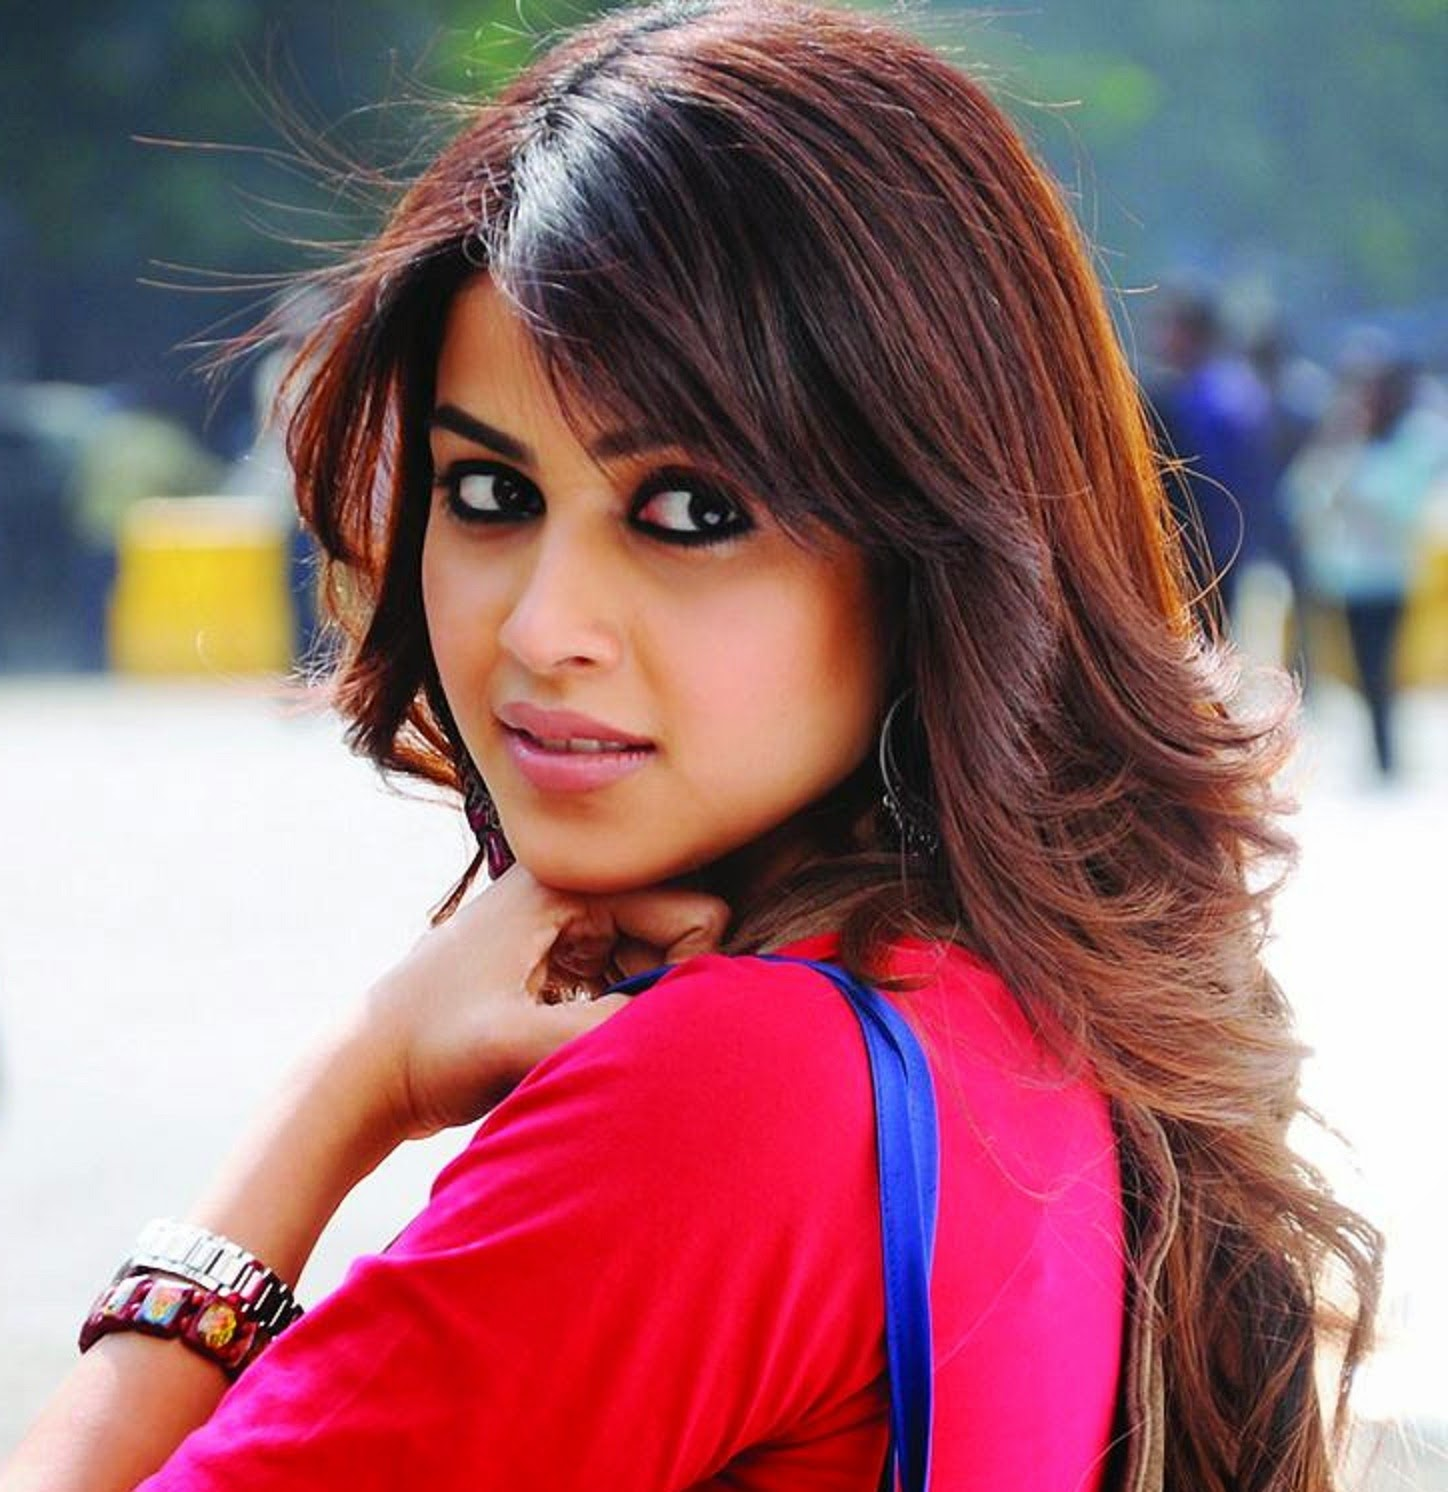 beautiful genelia d'souza image download - free all hd wallpapers